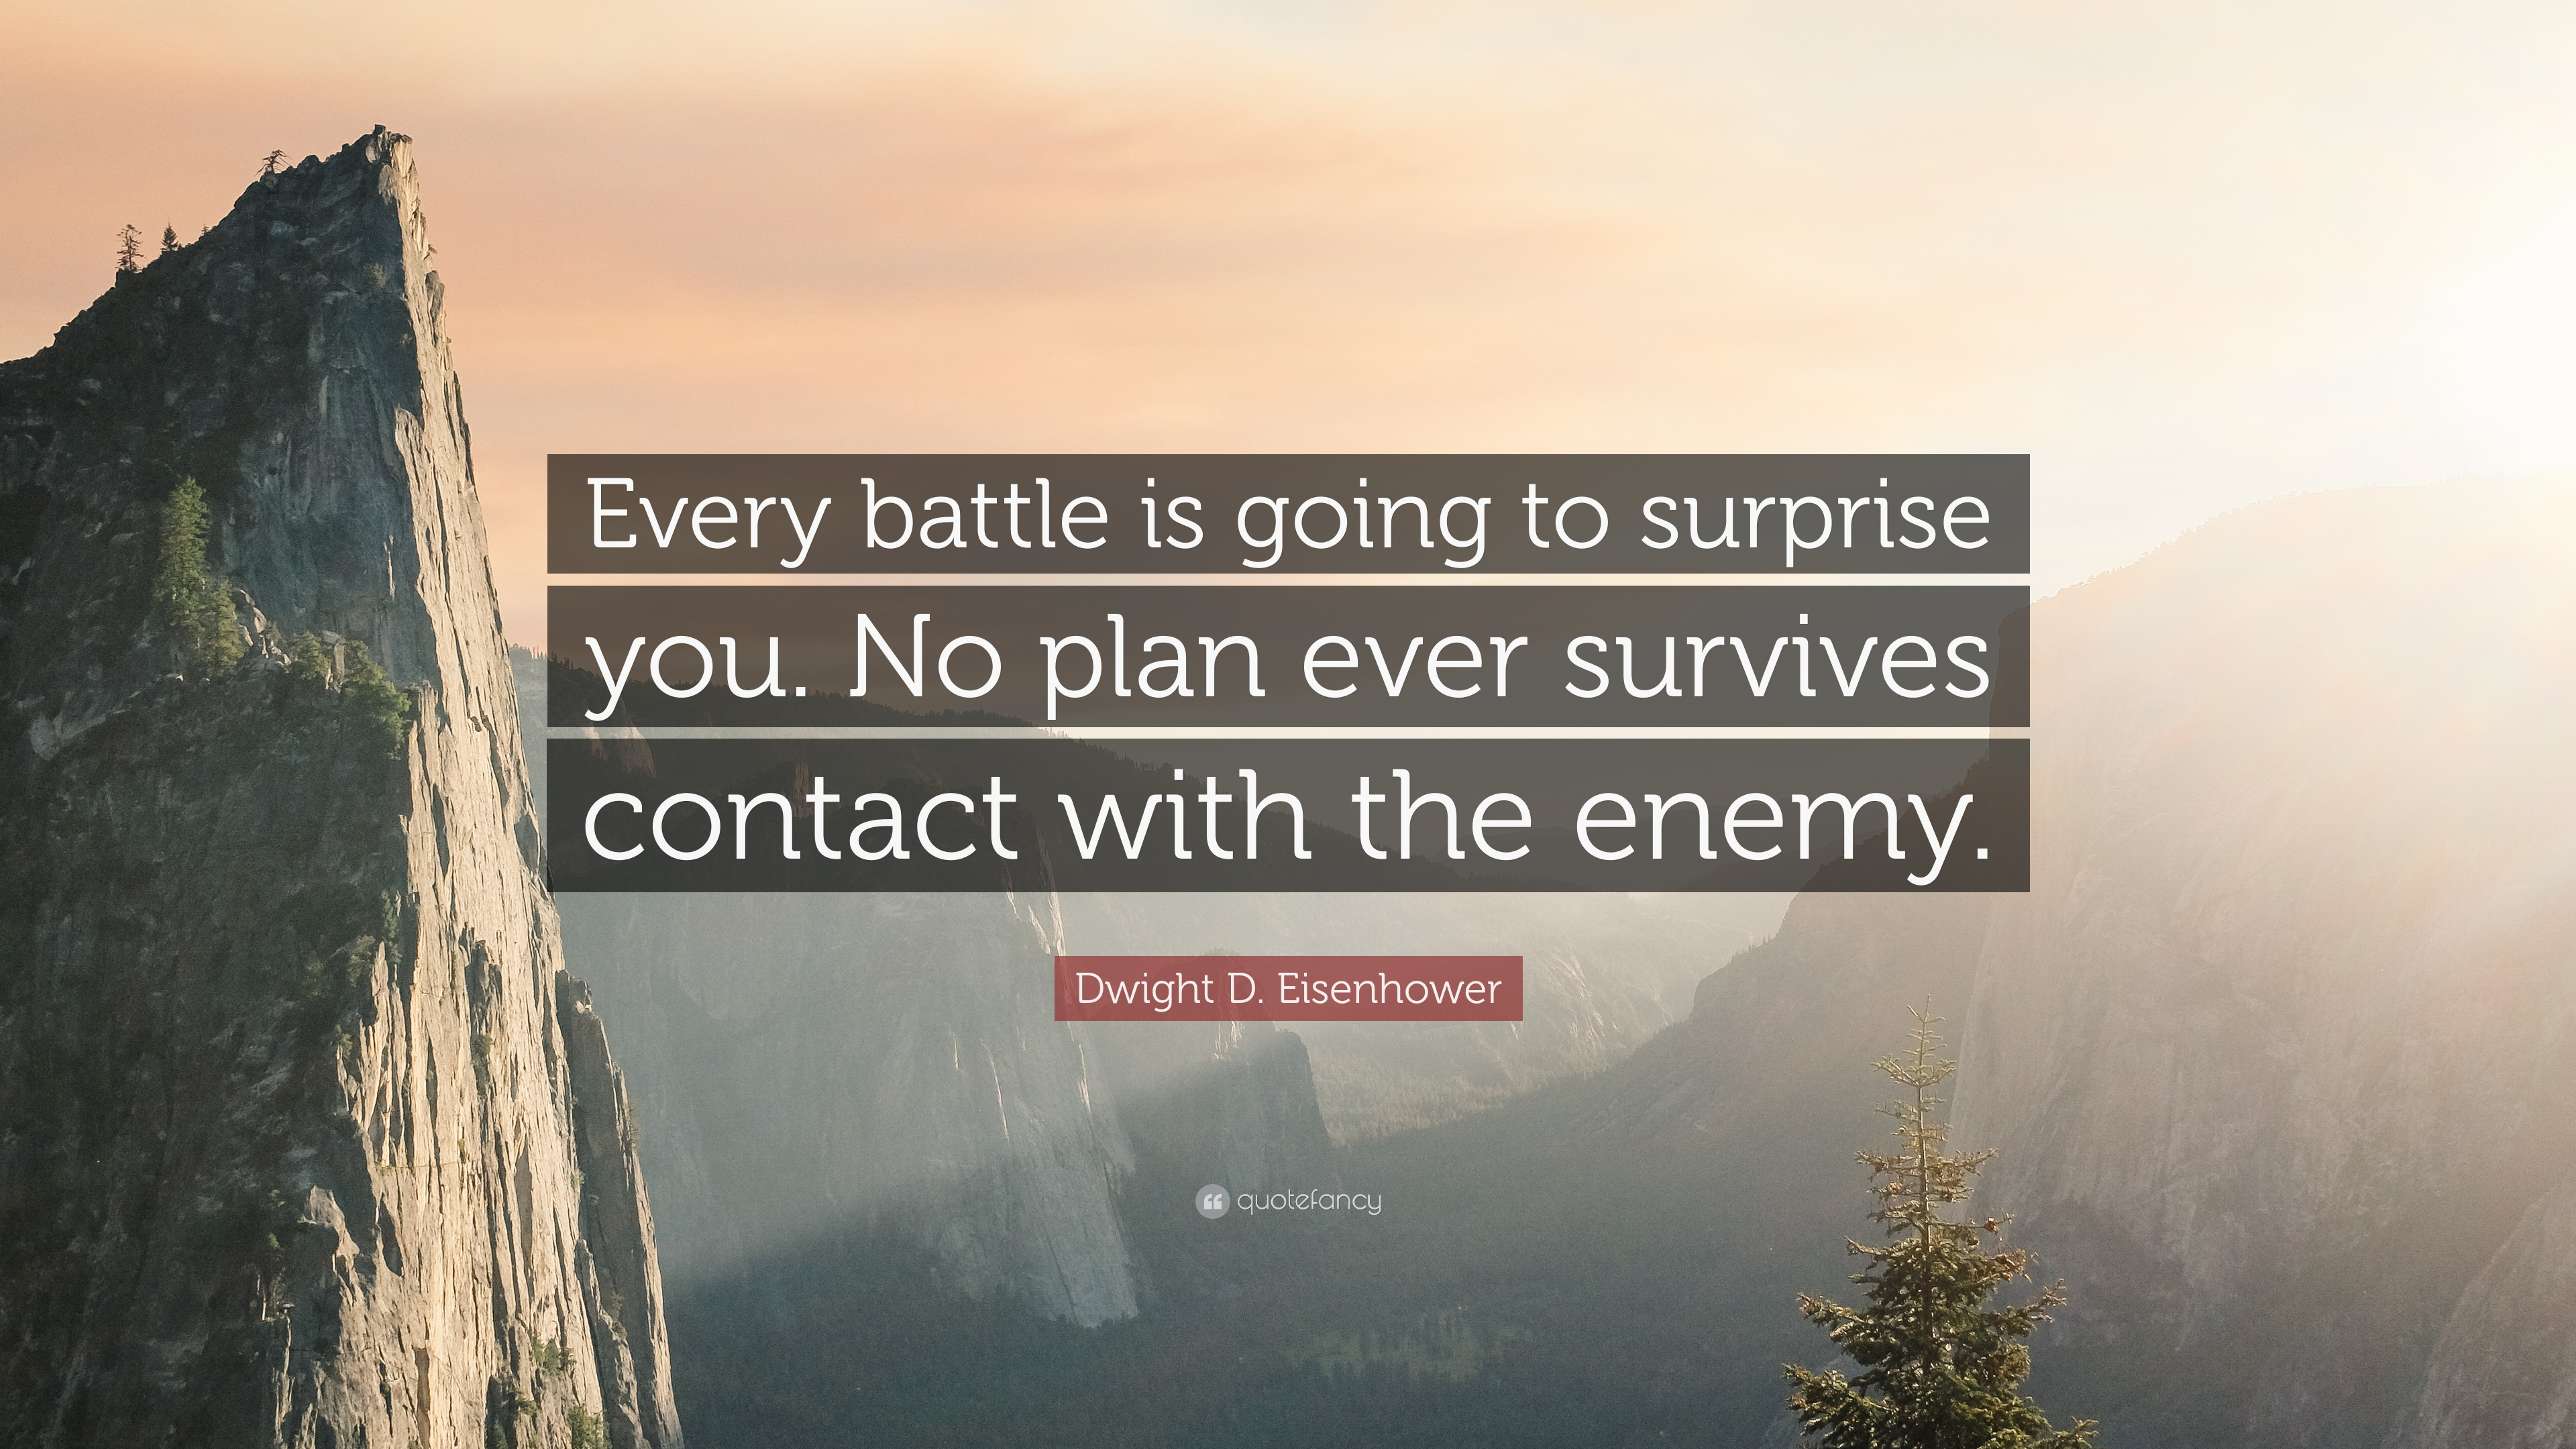 Dwight D Eisenhower Quote Every Battle Is Going To